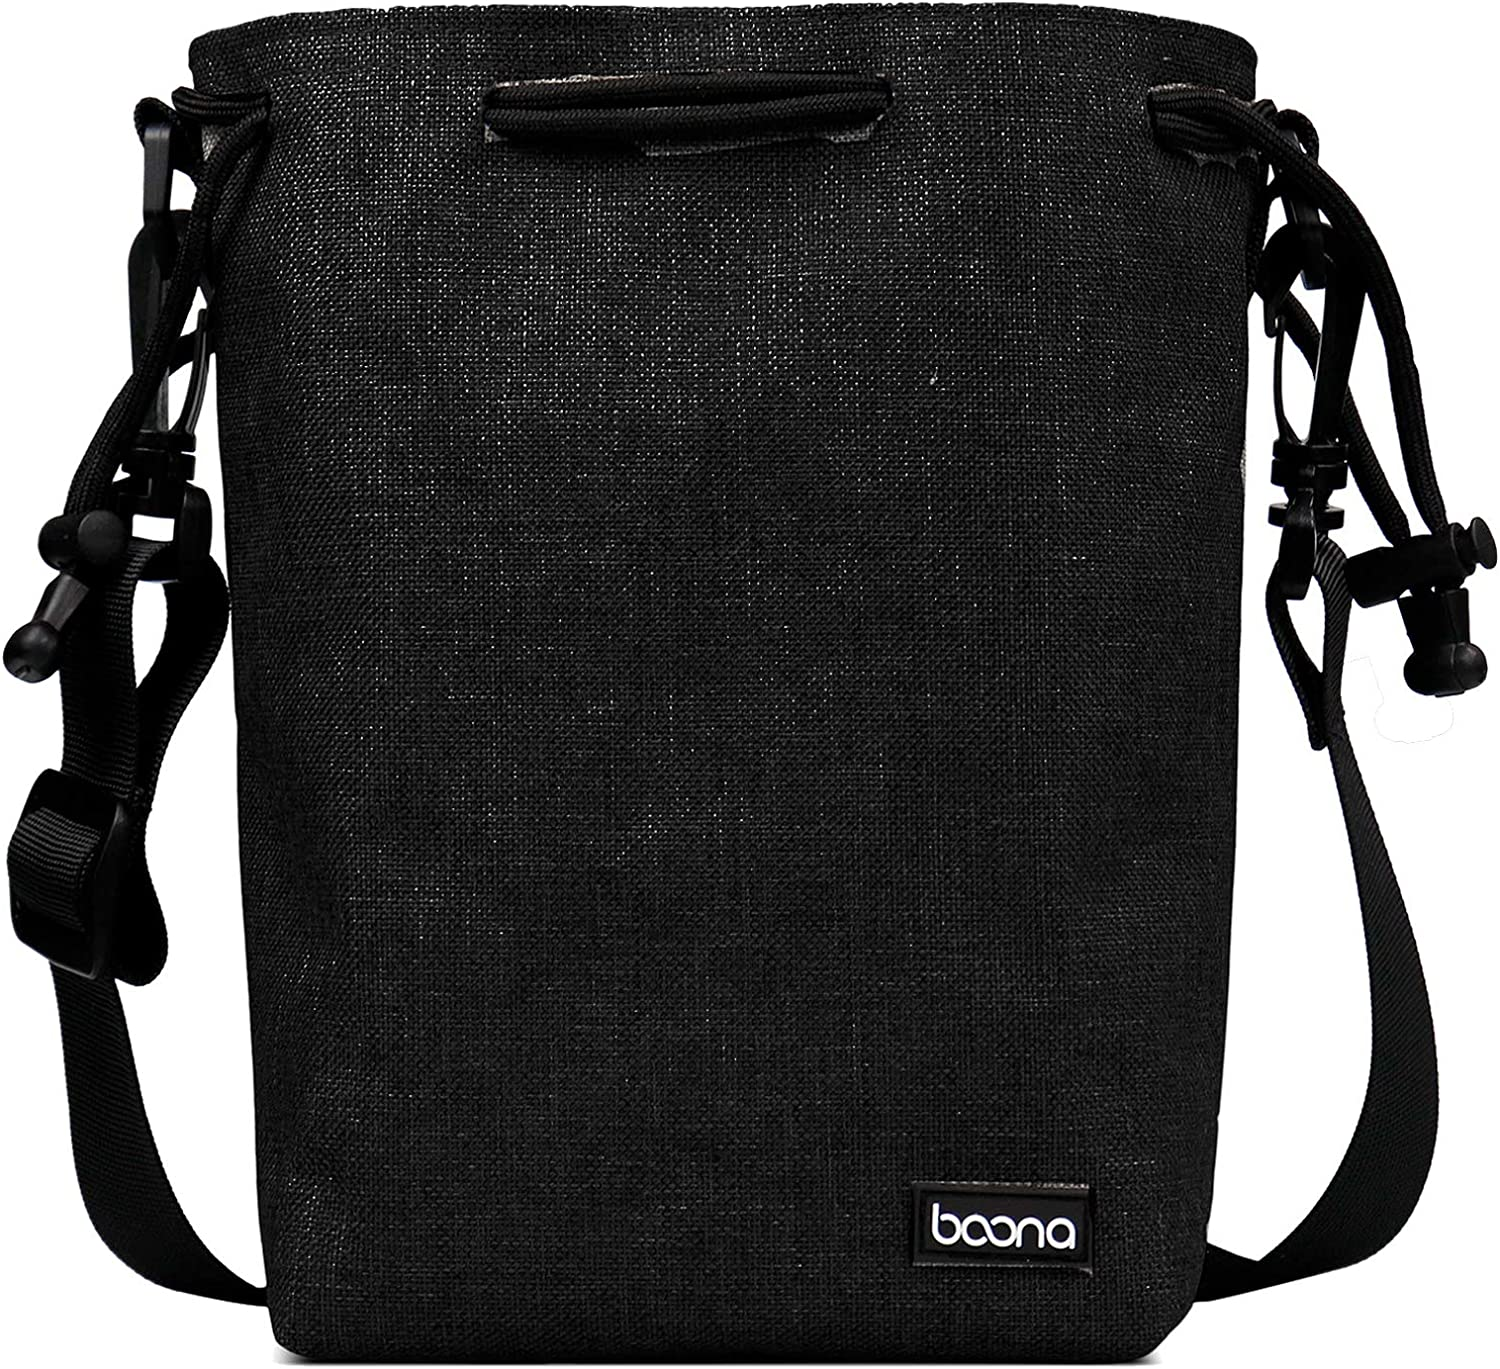 BOONA Waterproof Camera Pouch Camera Bag with Shoulder Strap, 6.7''x4.2''x9.4'' Black Velvet Padding Drawstring Pouch for DSLR Camera (Canon, Nikon, Pentax, Sony, Olympus, Panasonic)